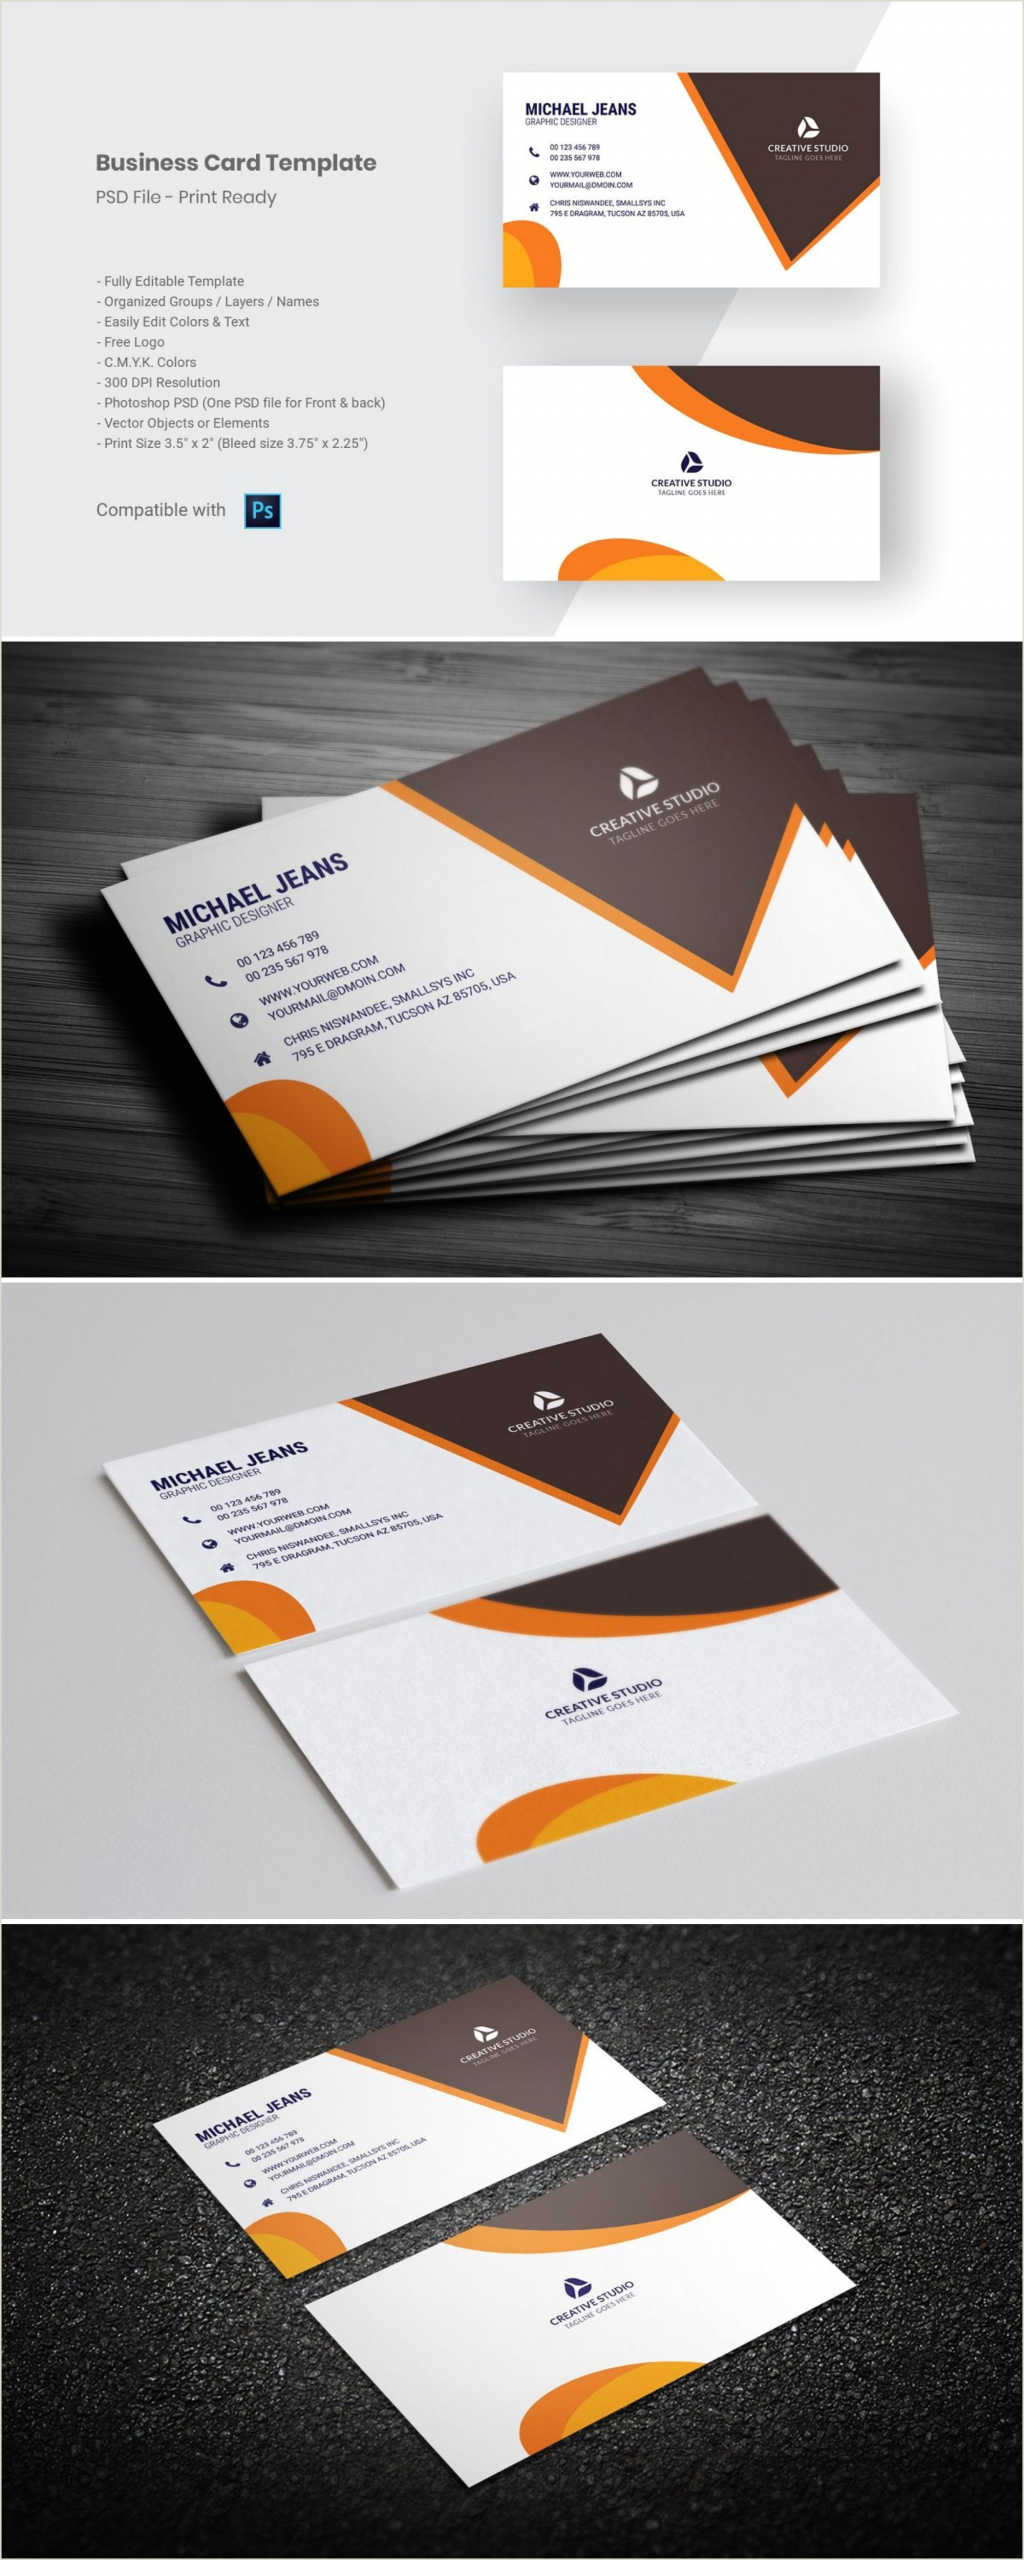 Samples Of Business Cards Modern Business Card Template